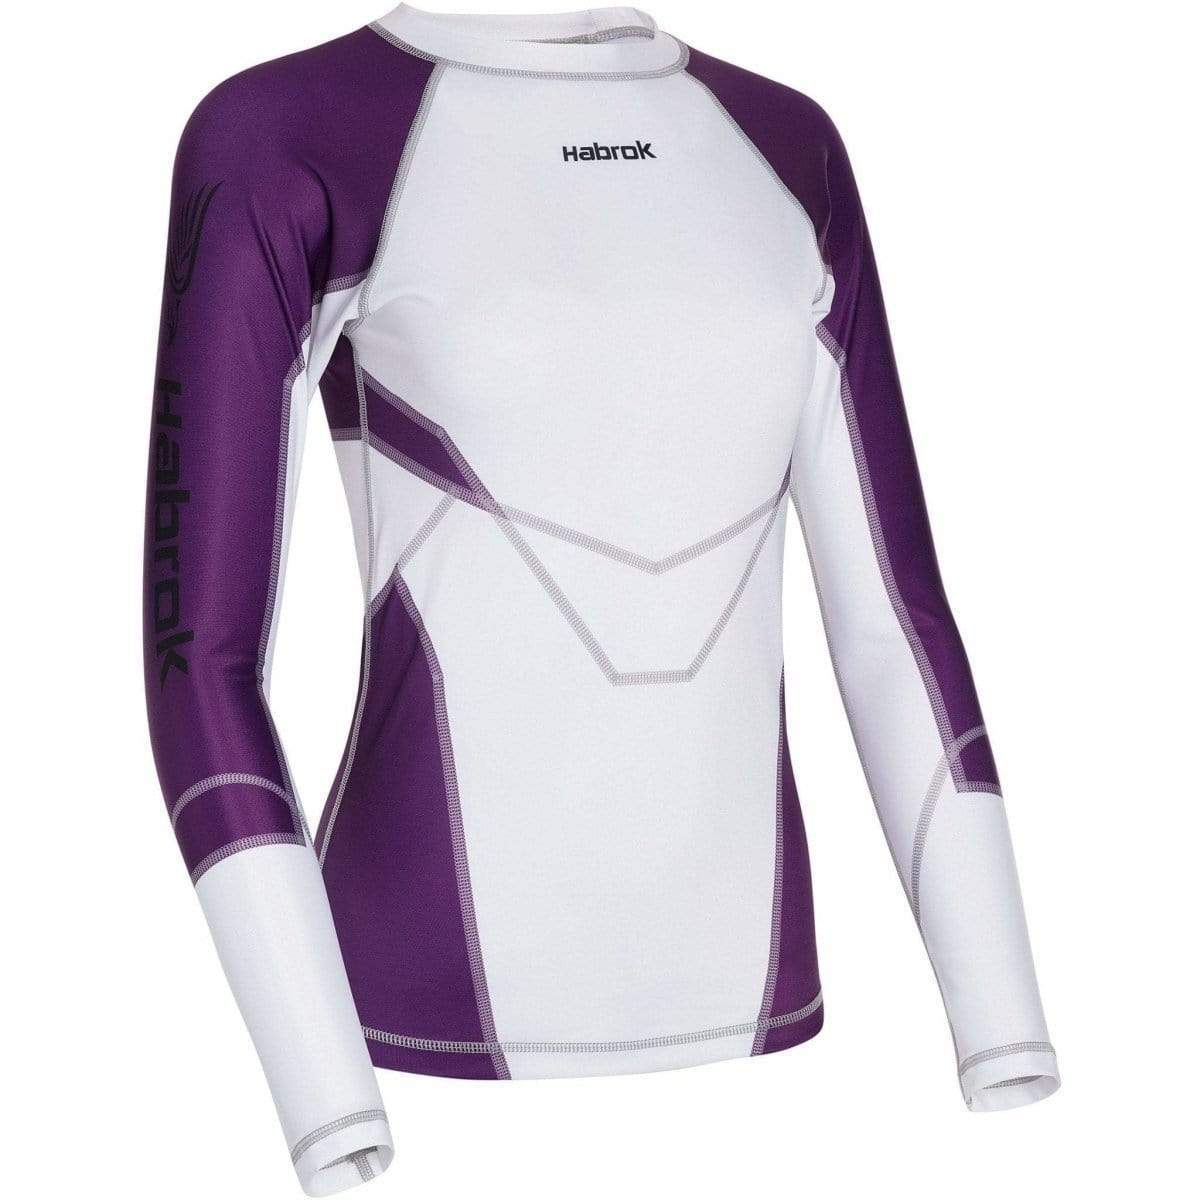 Habrok Rash Guard XS / PURPLE Transform 2.5 |Rash Guard Women | Full Sleeve